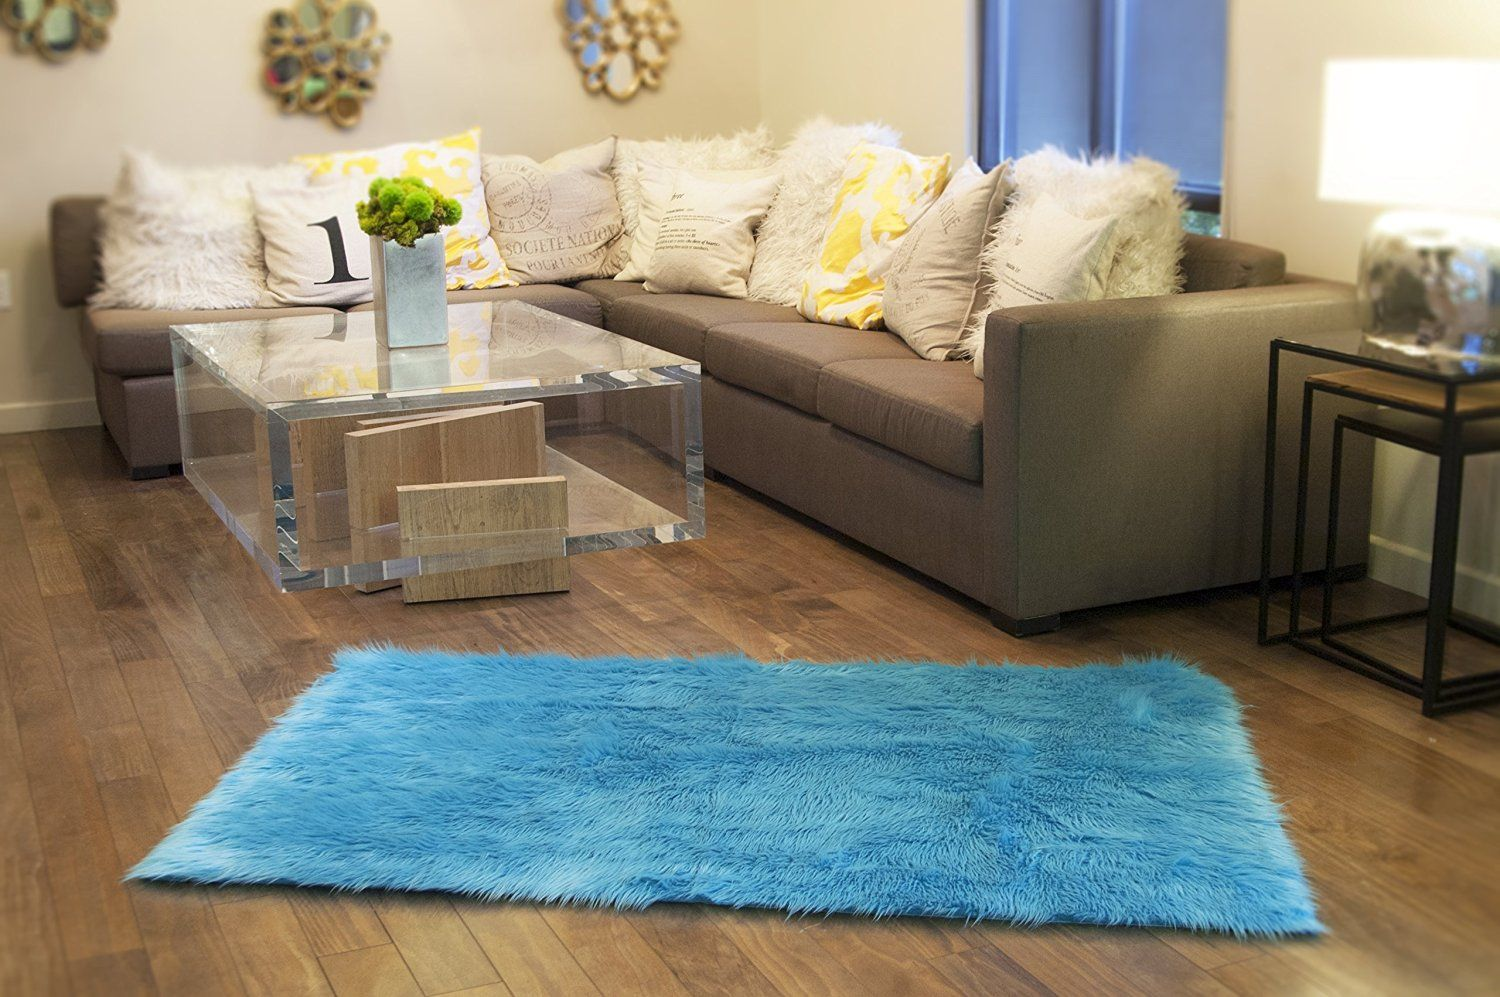 For living rooms especially, the rug stakes can feel pretty overwhelming. Elegance Modern Area Rug For Living Room and Office Shag ...